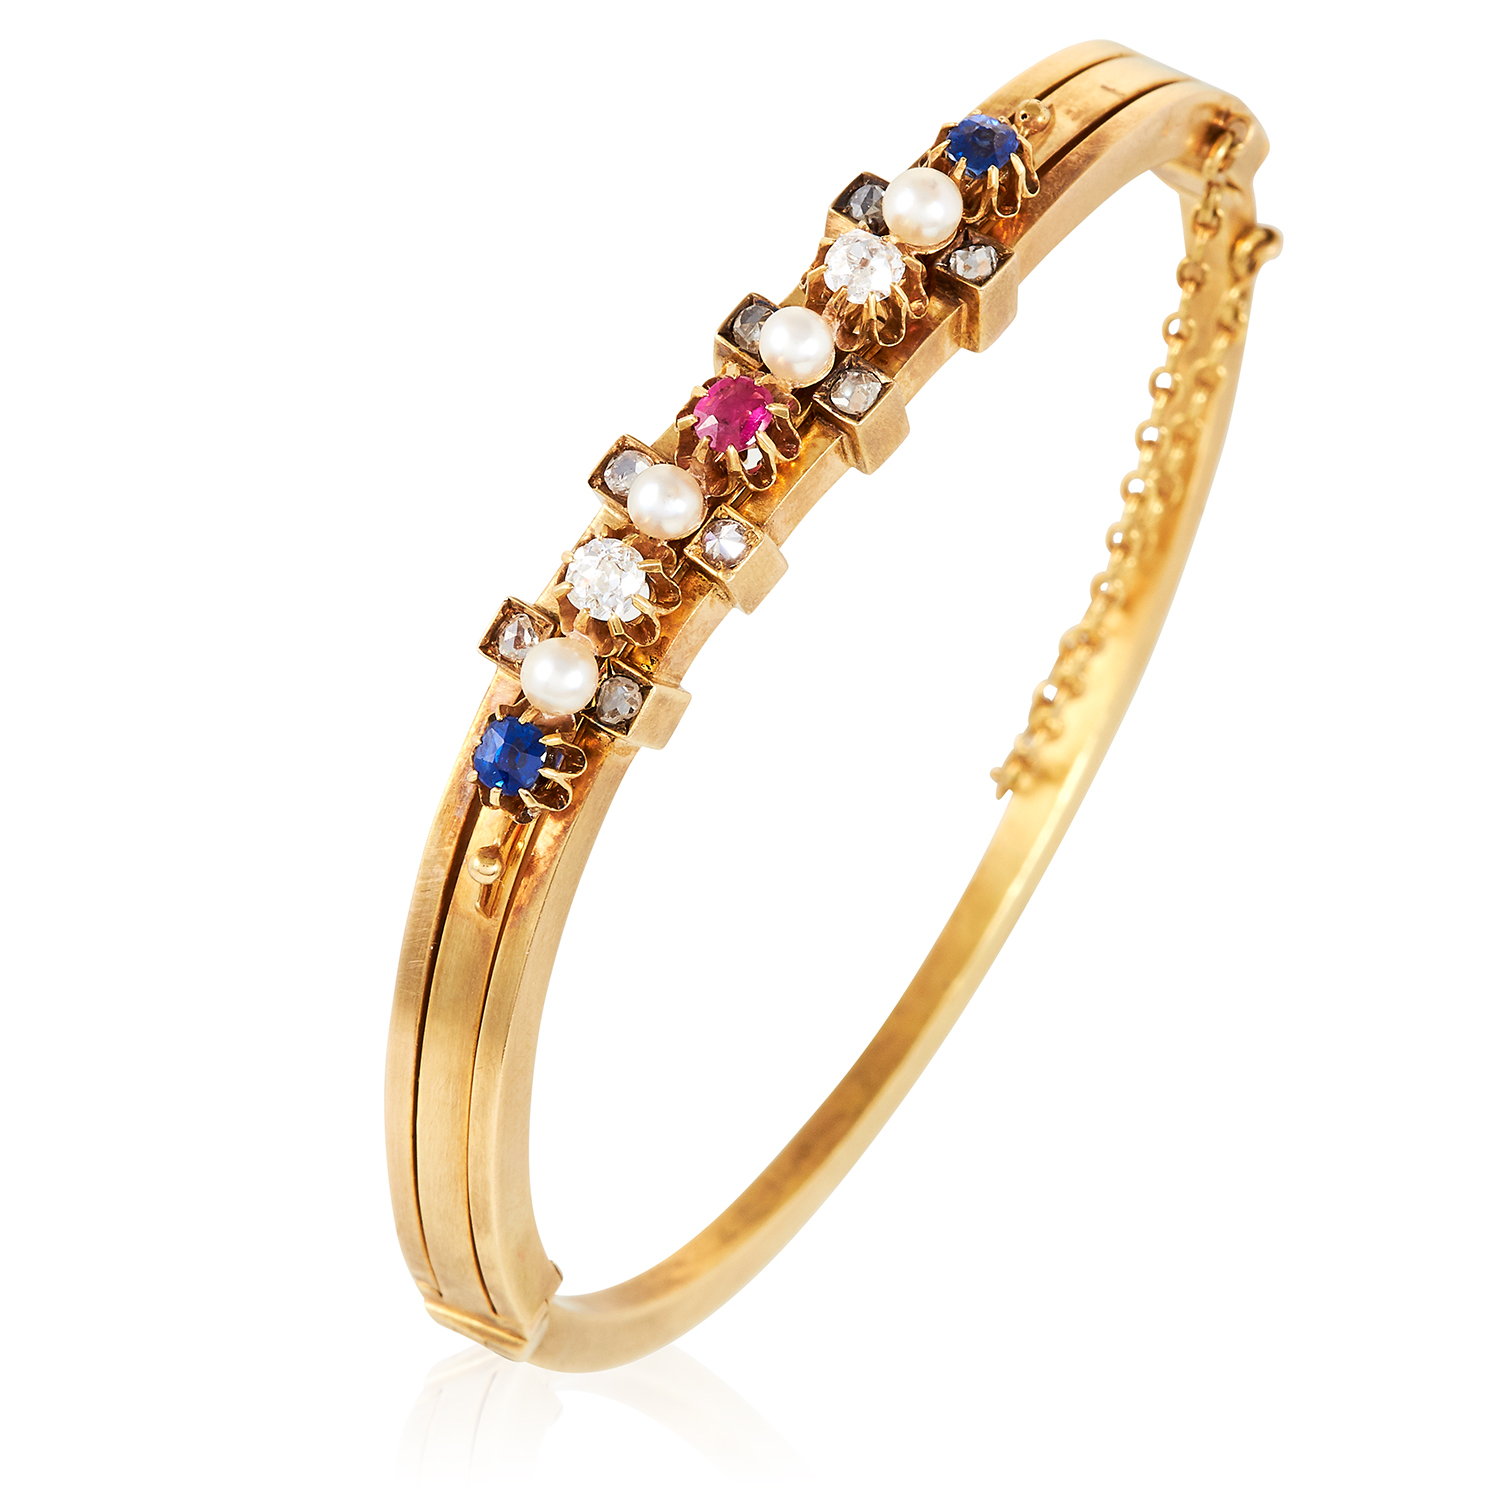 Los 2 - AN ANTIQUE RUBY, SAPPHIRE, PEARL AND DIAMOND BANGLE in high carat yellow gold, the undulating body